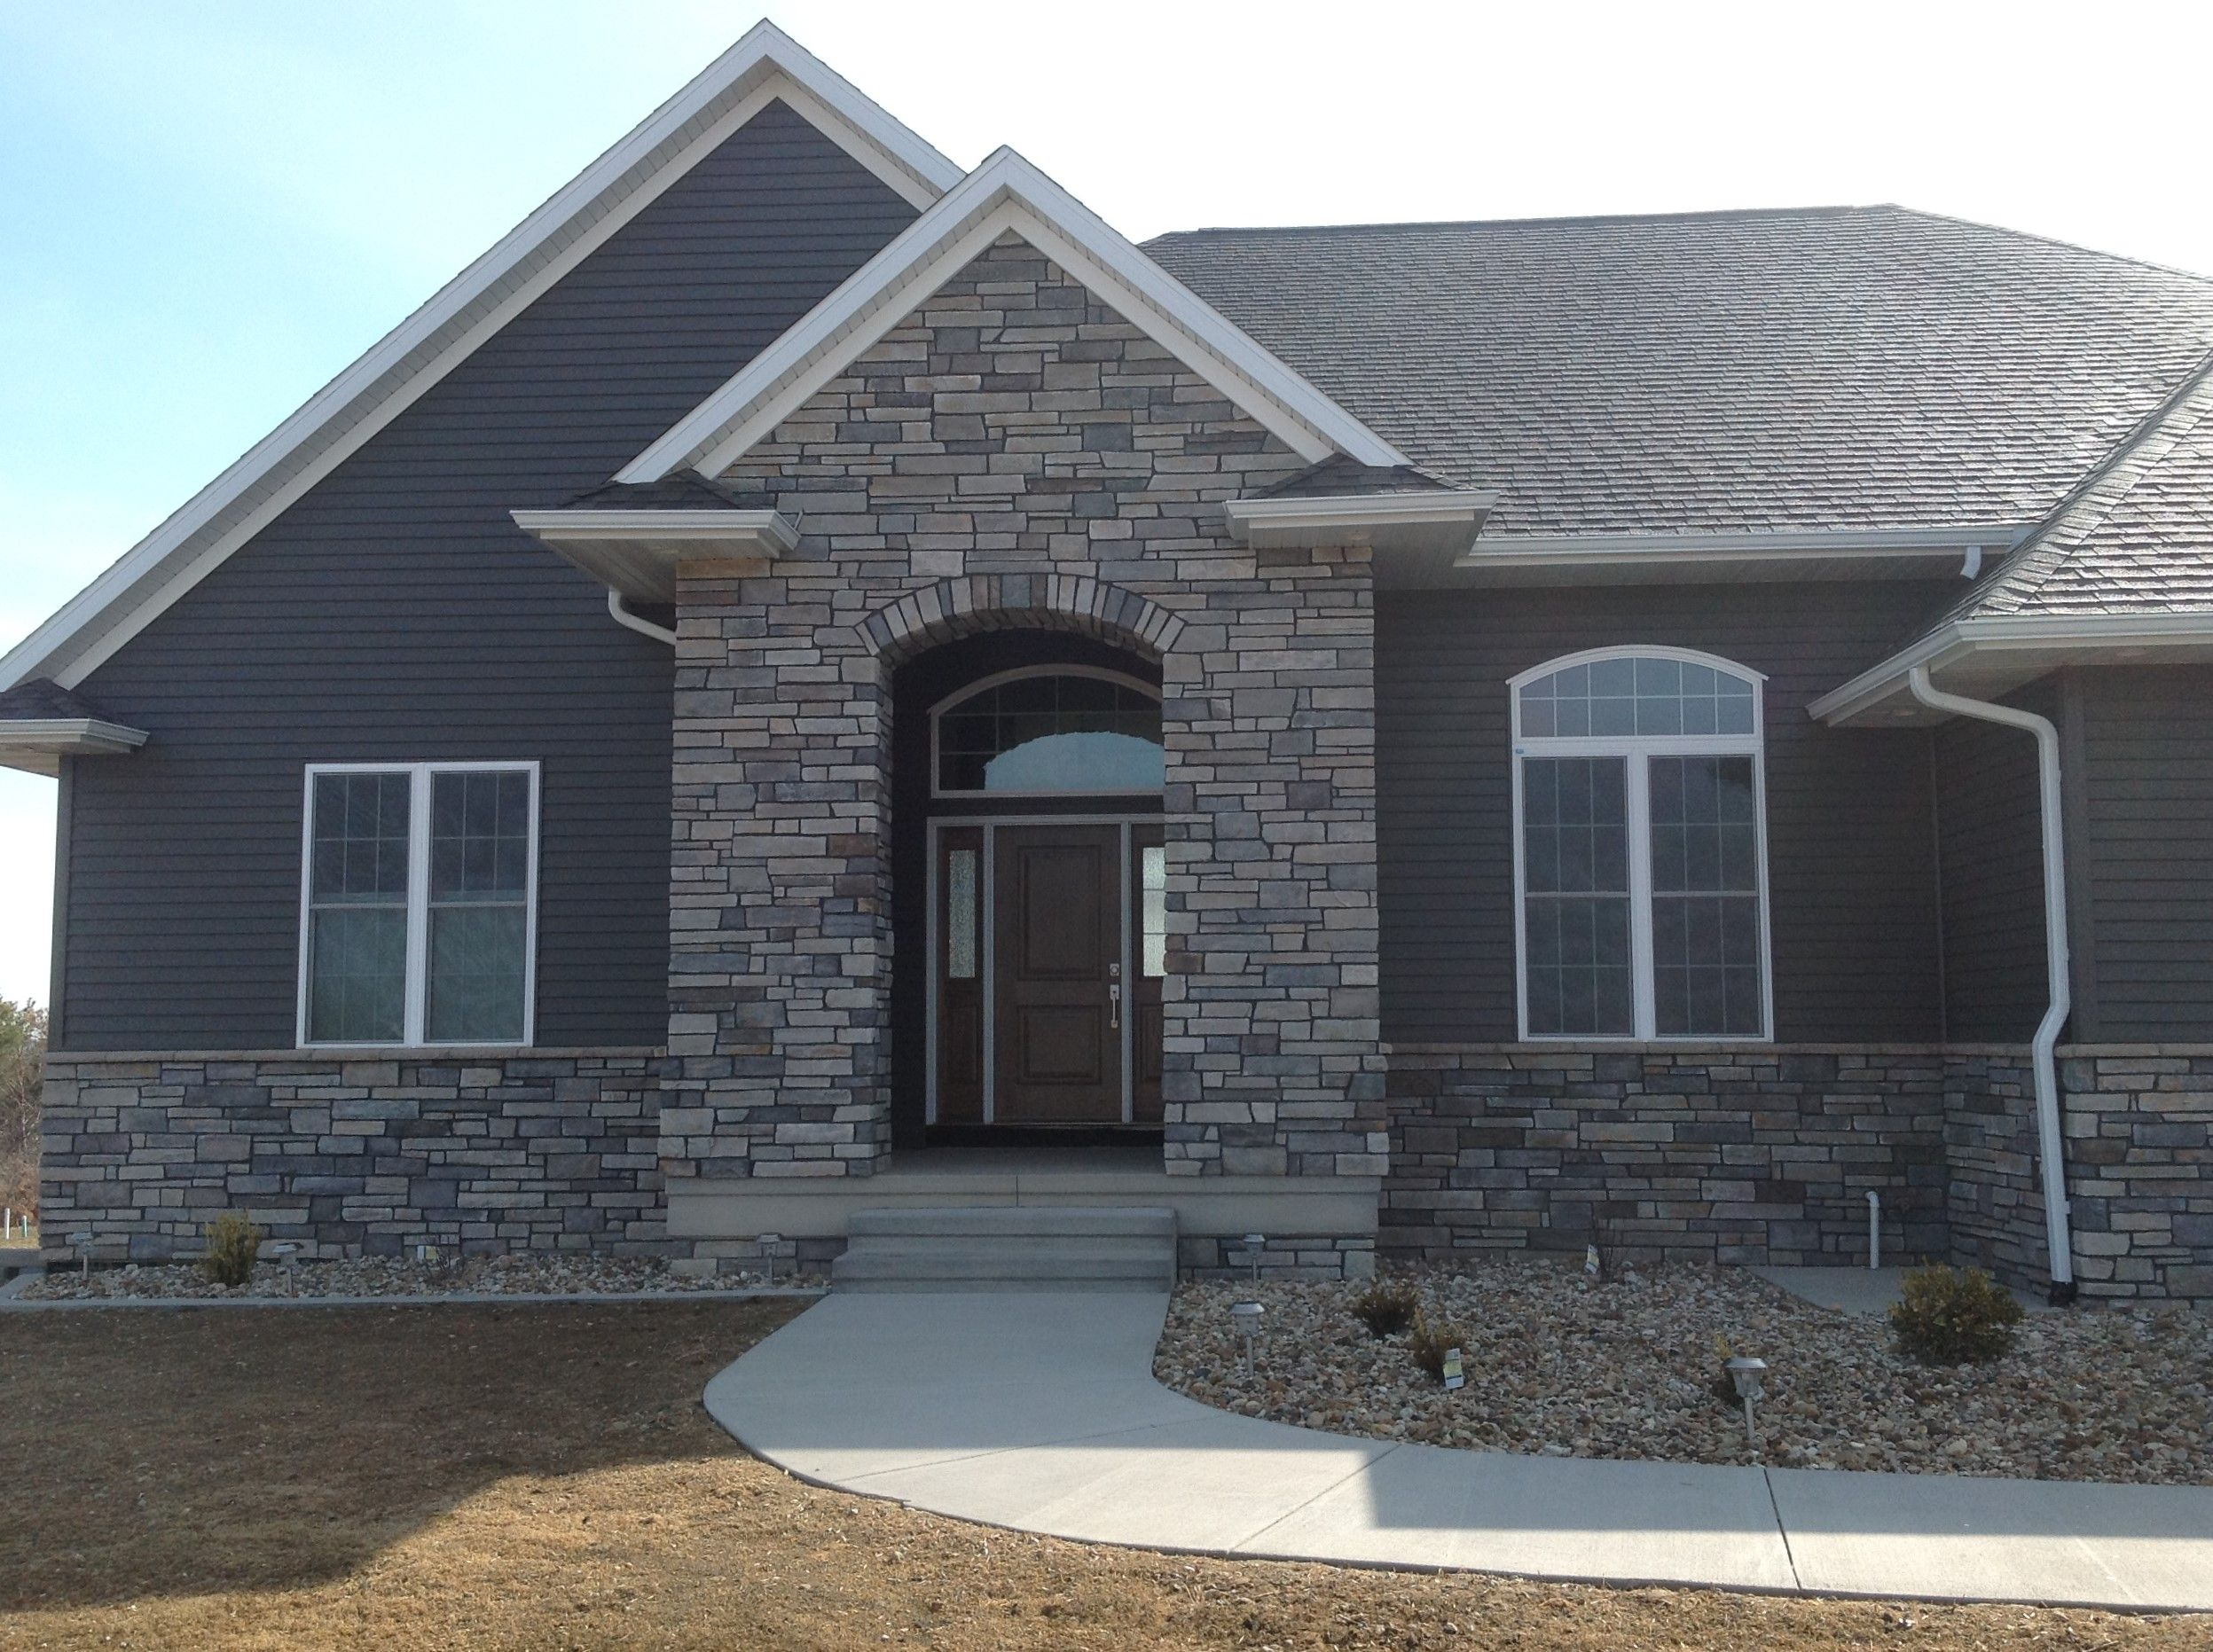 Boral echo ridge country ledgestone country ledgestone for Black stone house